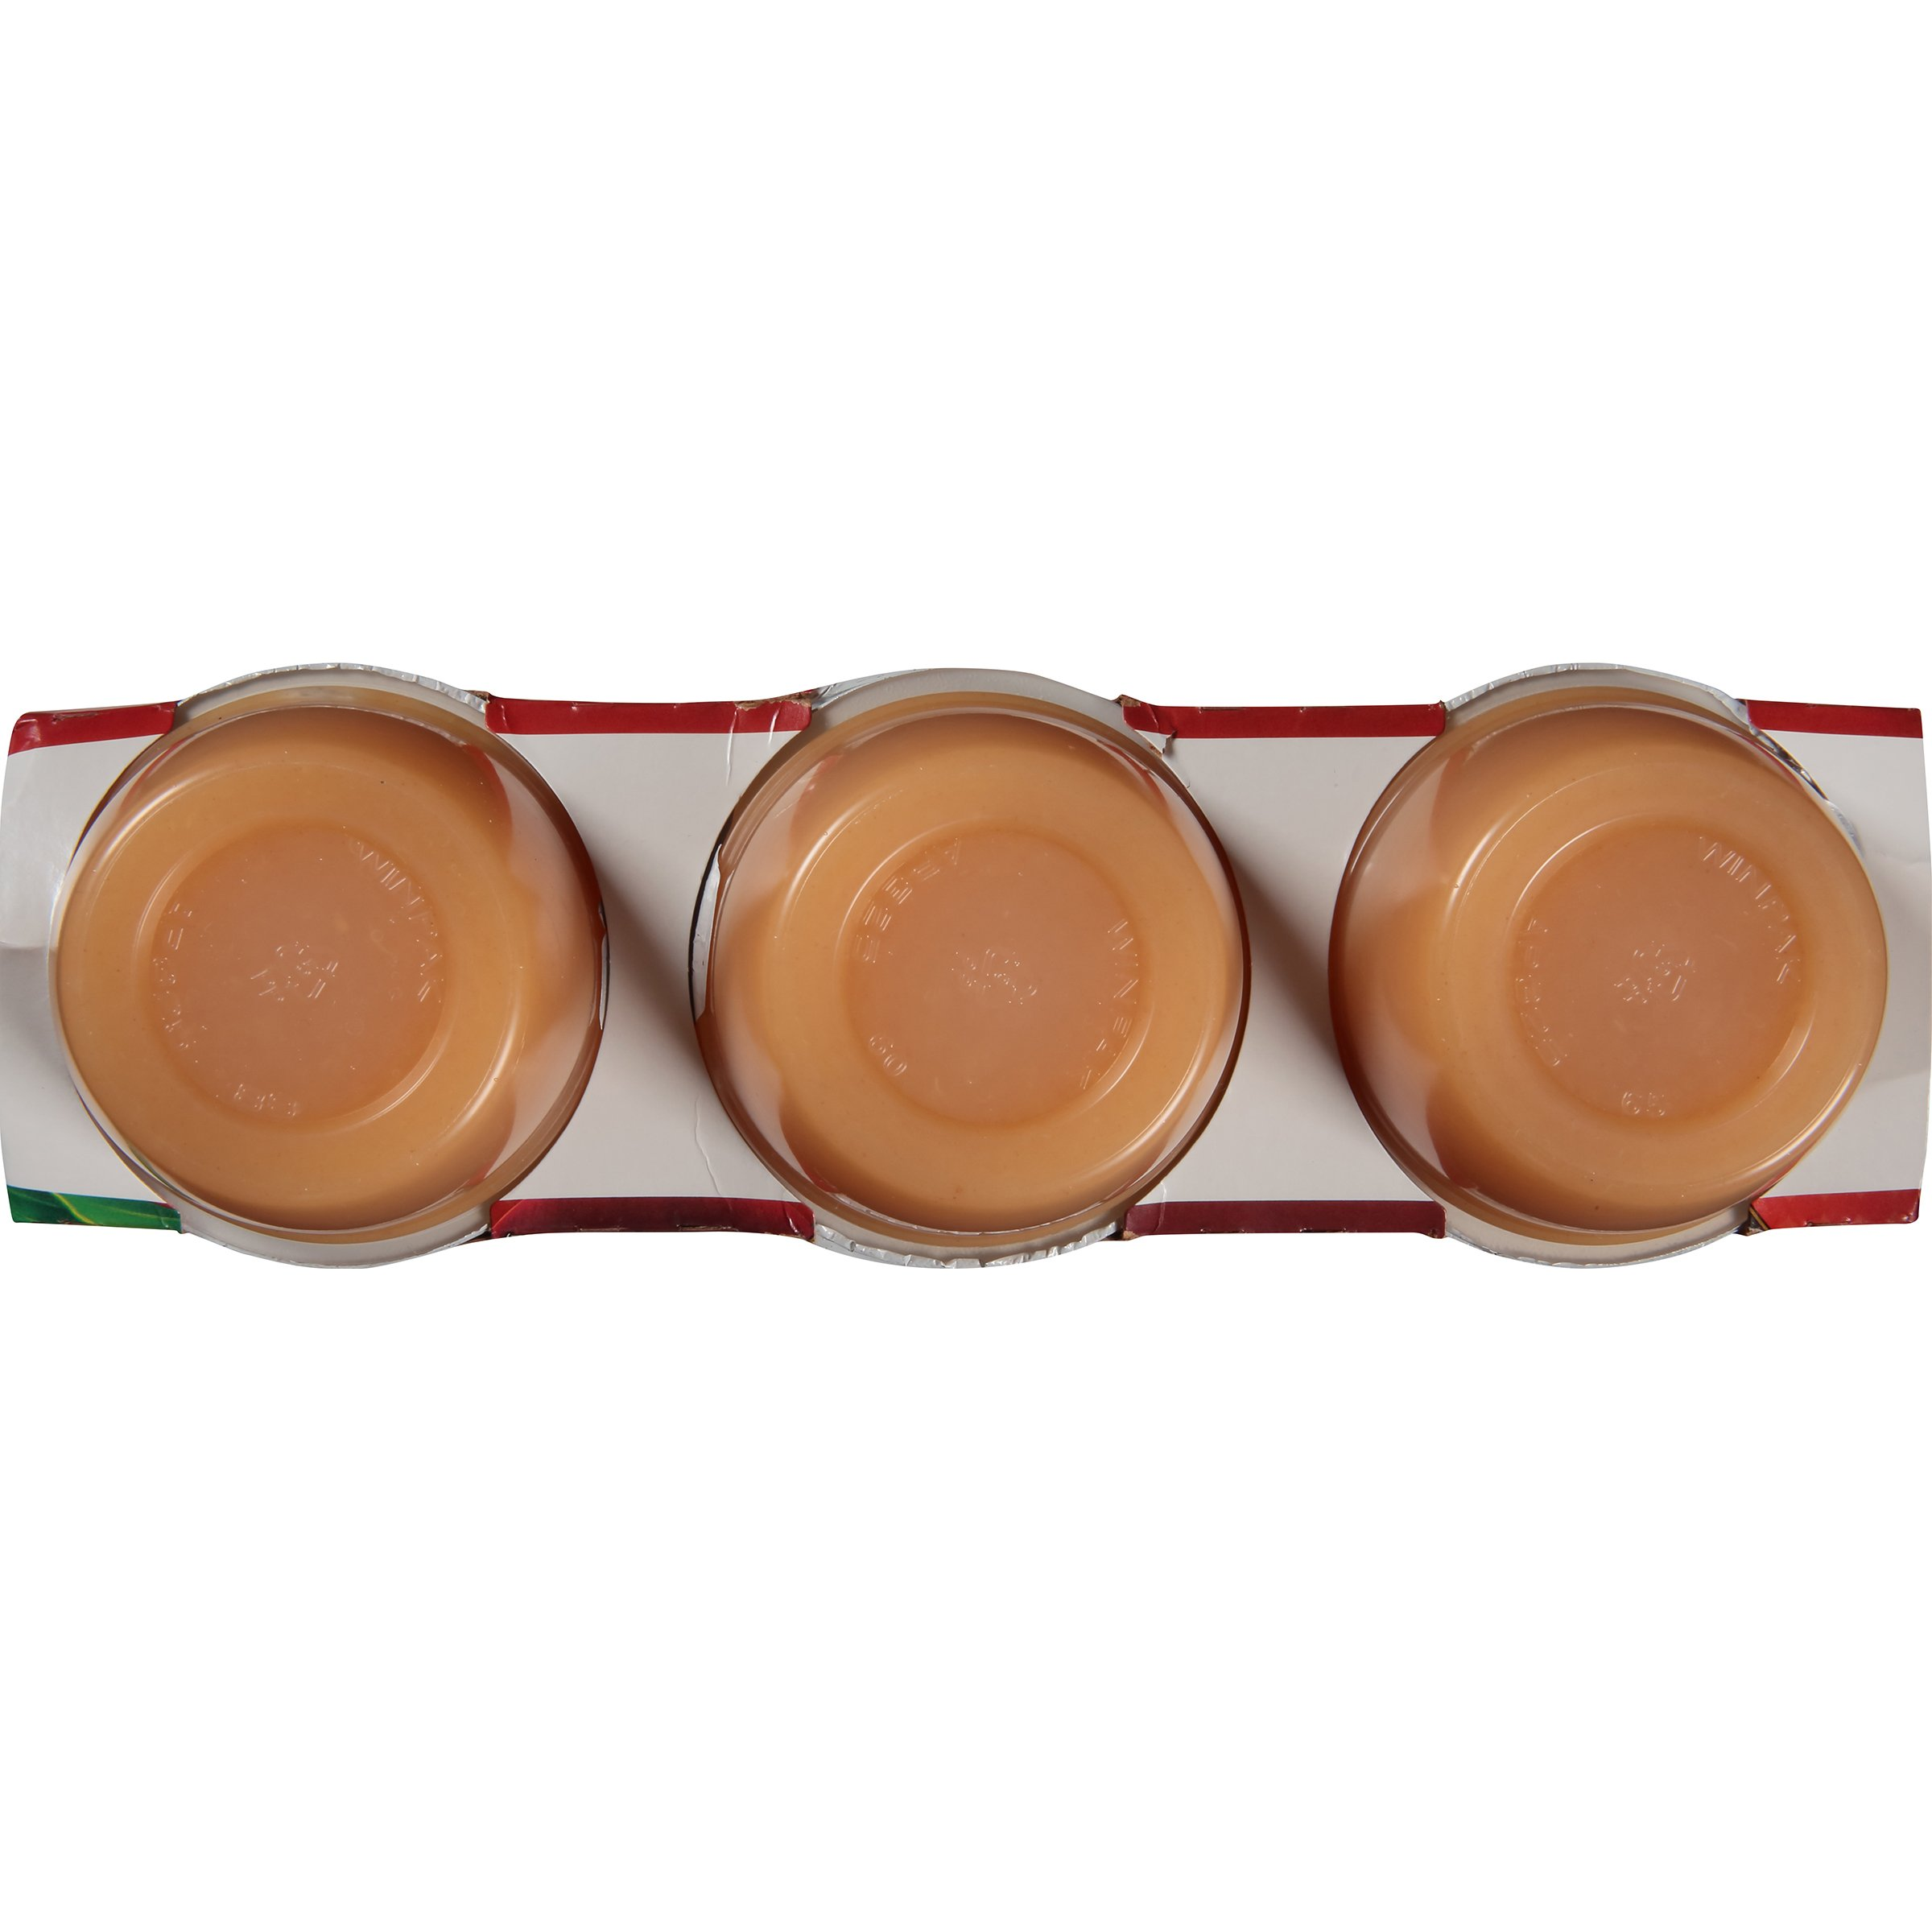 Musselman's Cinnamon Sweetened Applesauce, 4-Ounce Cups (Pack of 72) by Musselmans (Image #4)